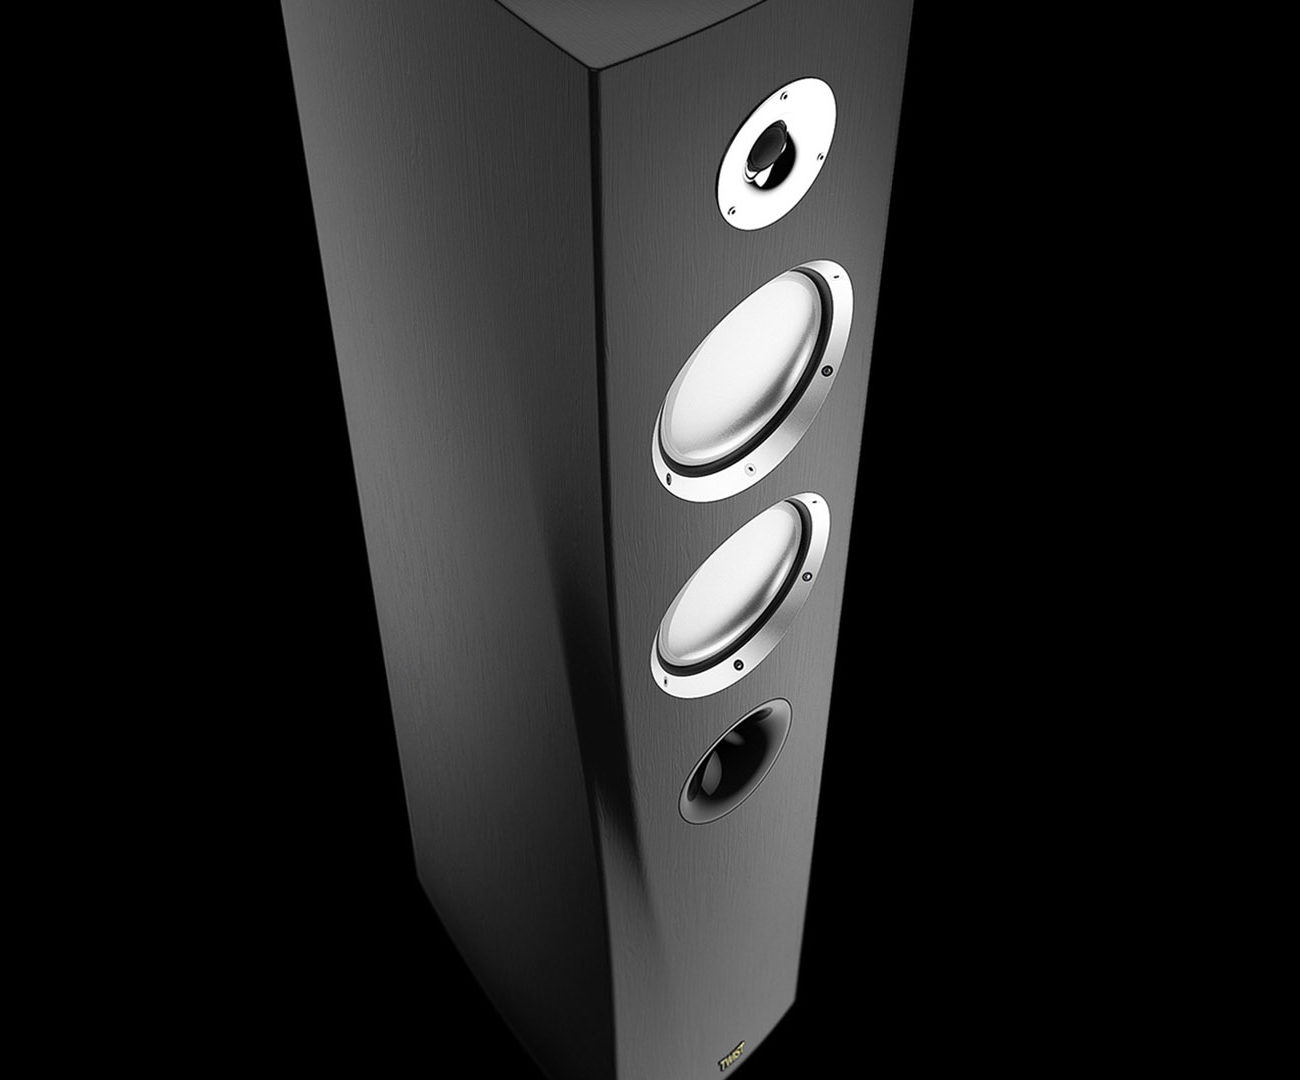 Floor standing speakers designed by Hamid Bekradi, using carbon fiber